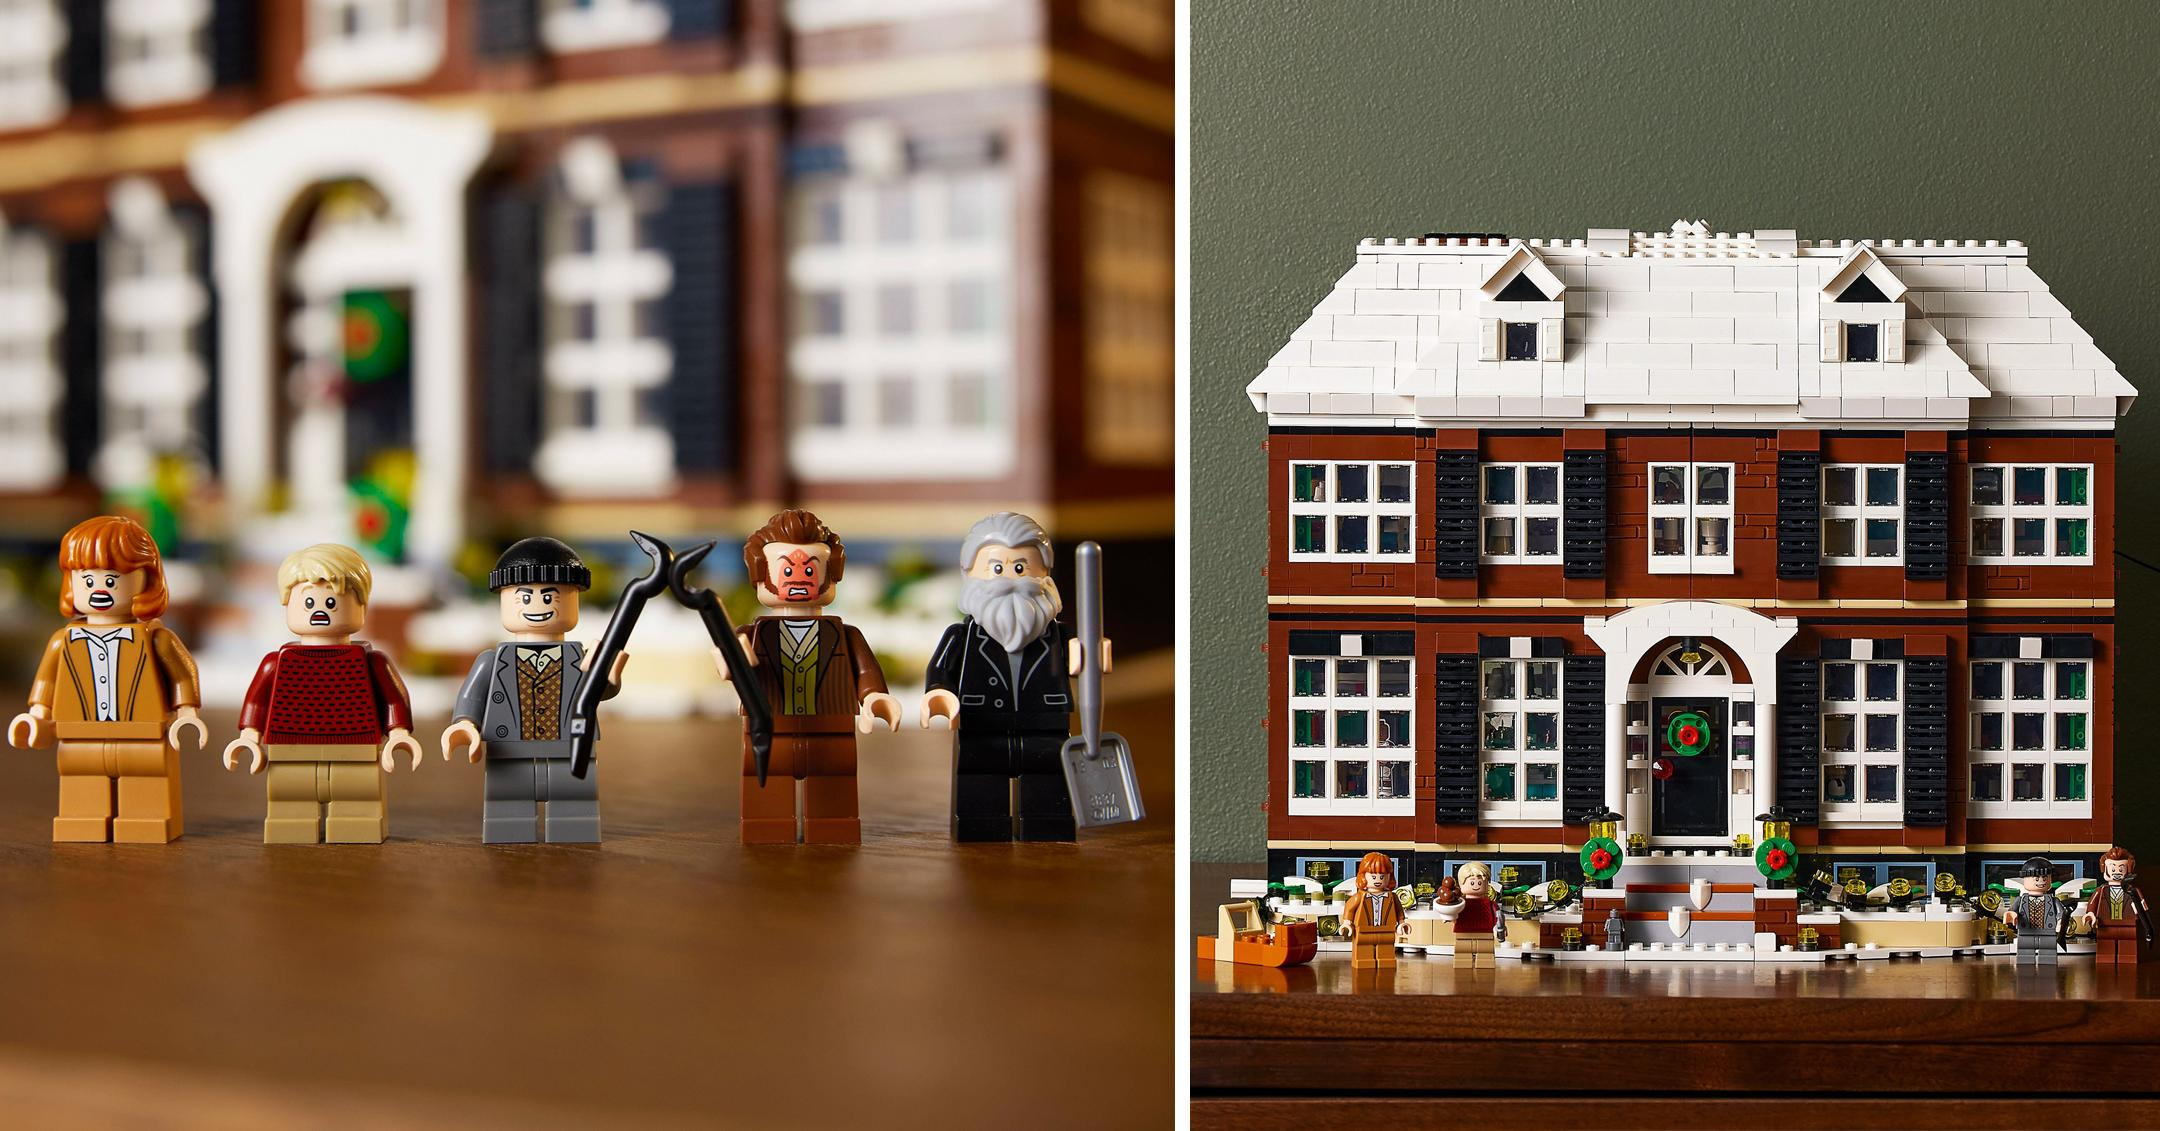 lego house based on the house from the all time festive classic movie home alone